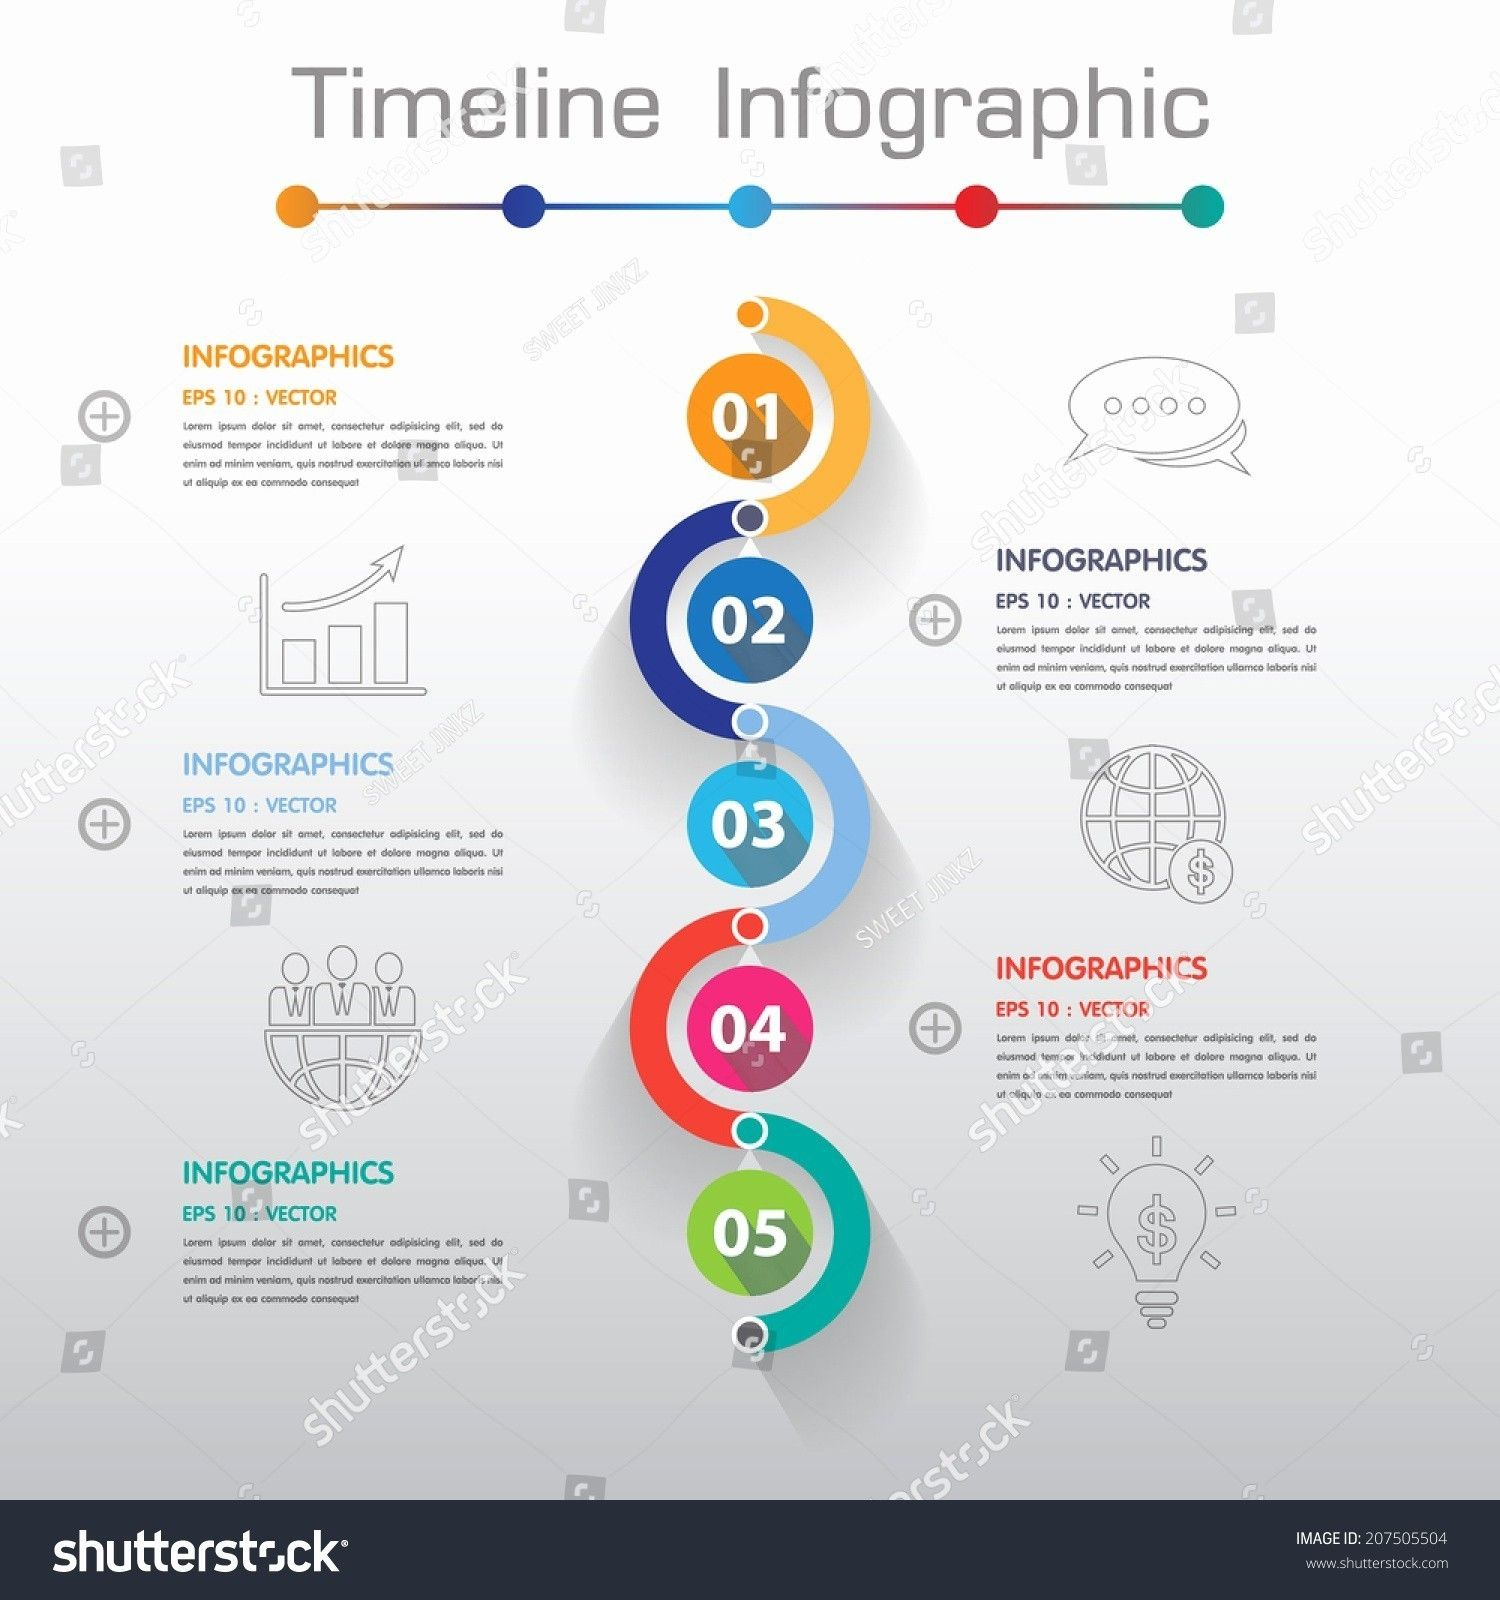 Download New Business Pitch Powerpoint Template Can Save At New Business Pit Free Business Card Templates Business Card Templates Download Vector Business Card